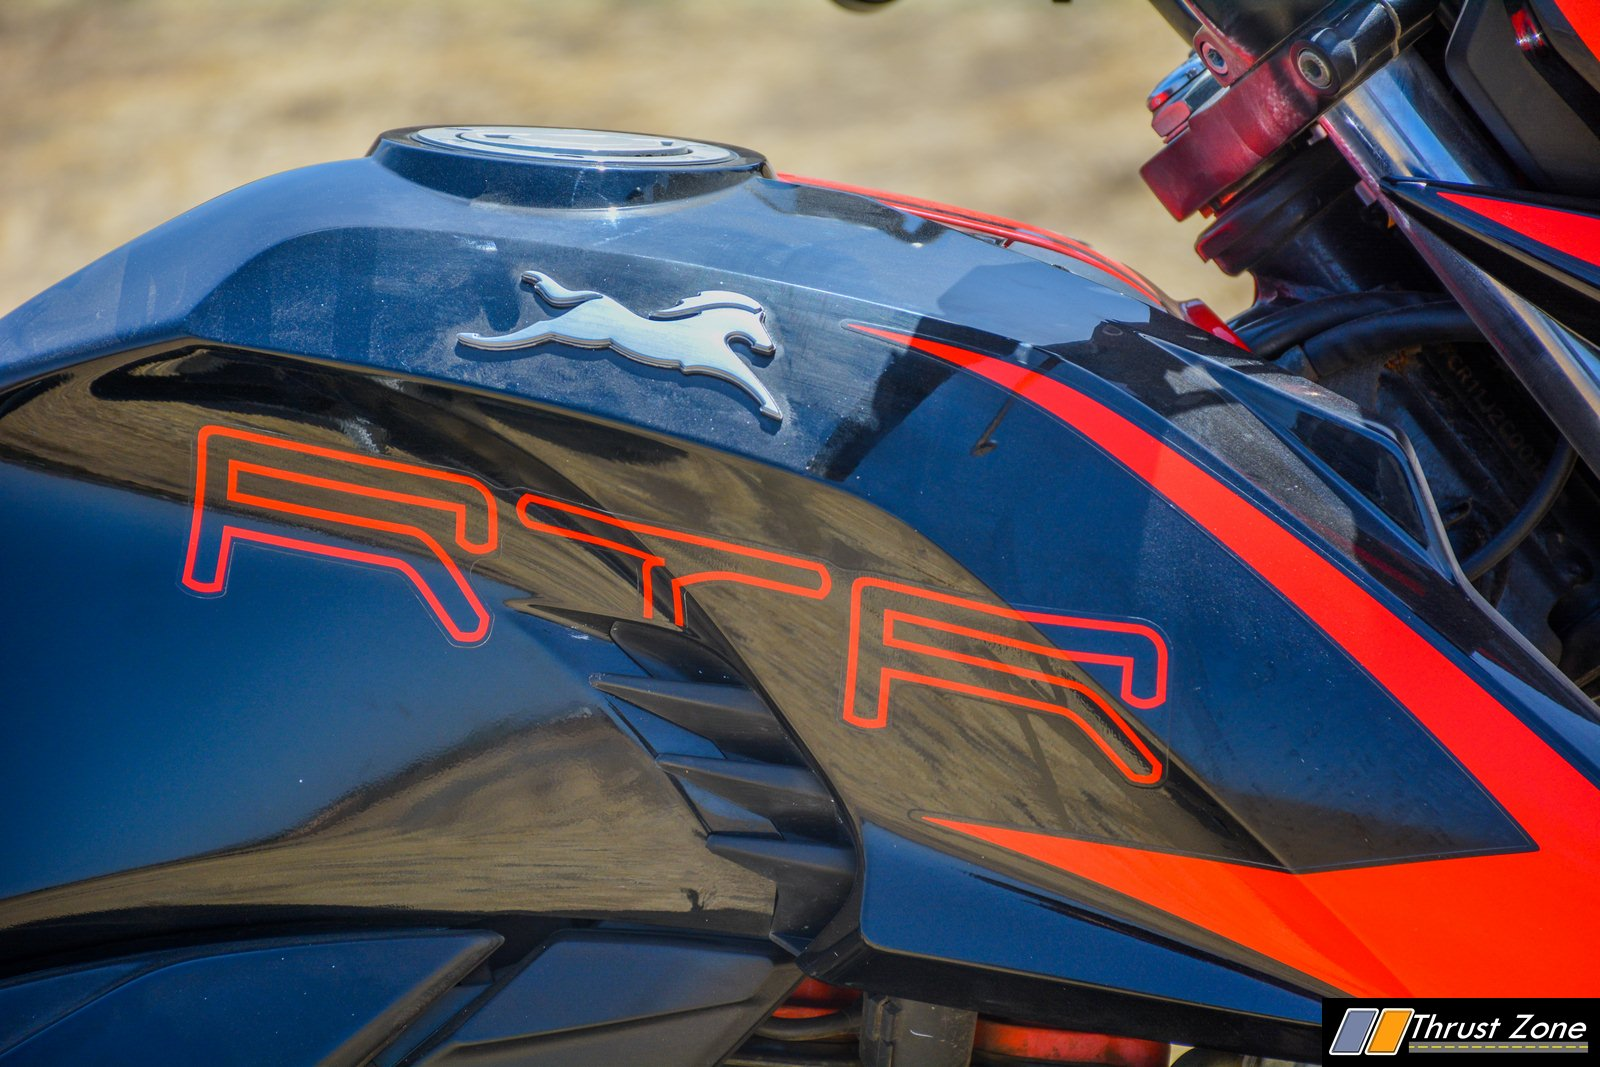 https://www.thrustzone.com/wp-content/uploads/2019/03/2019-Apache-RTR-200-Race-Edition-Review-7.jpg